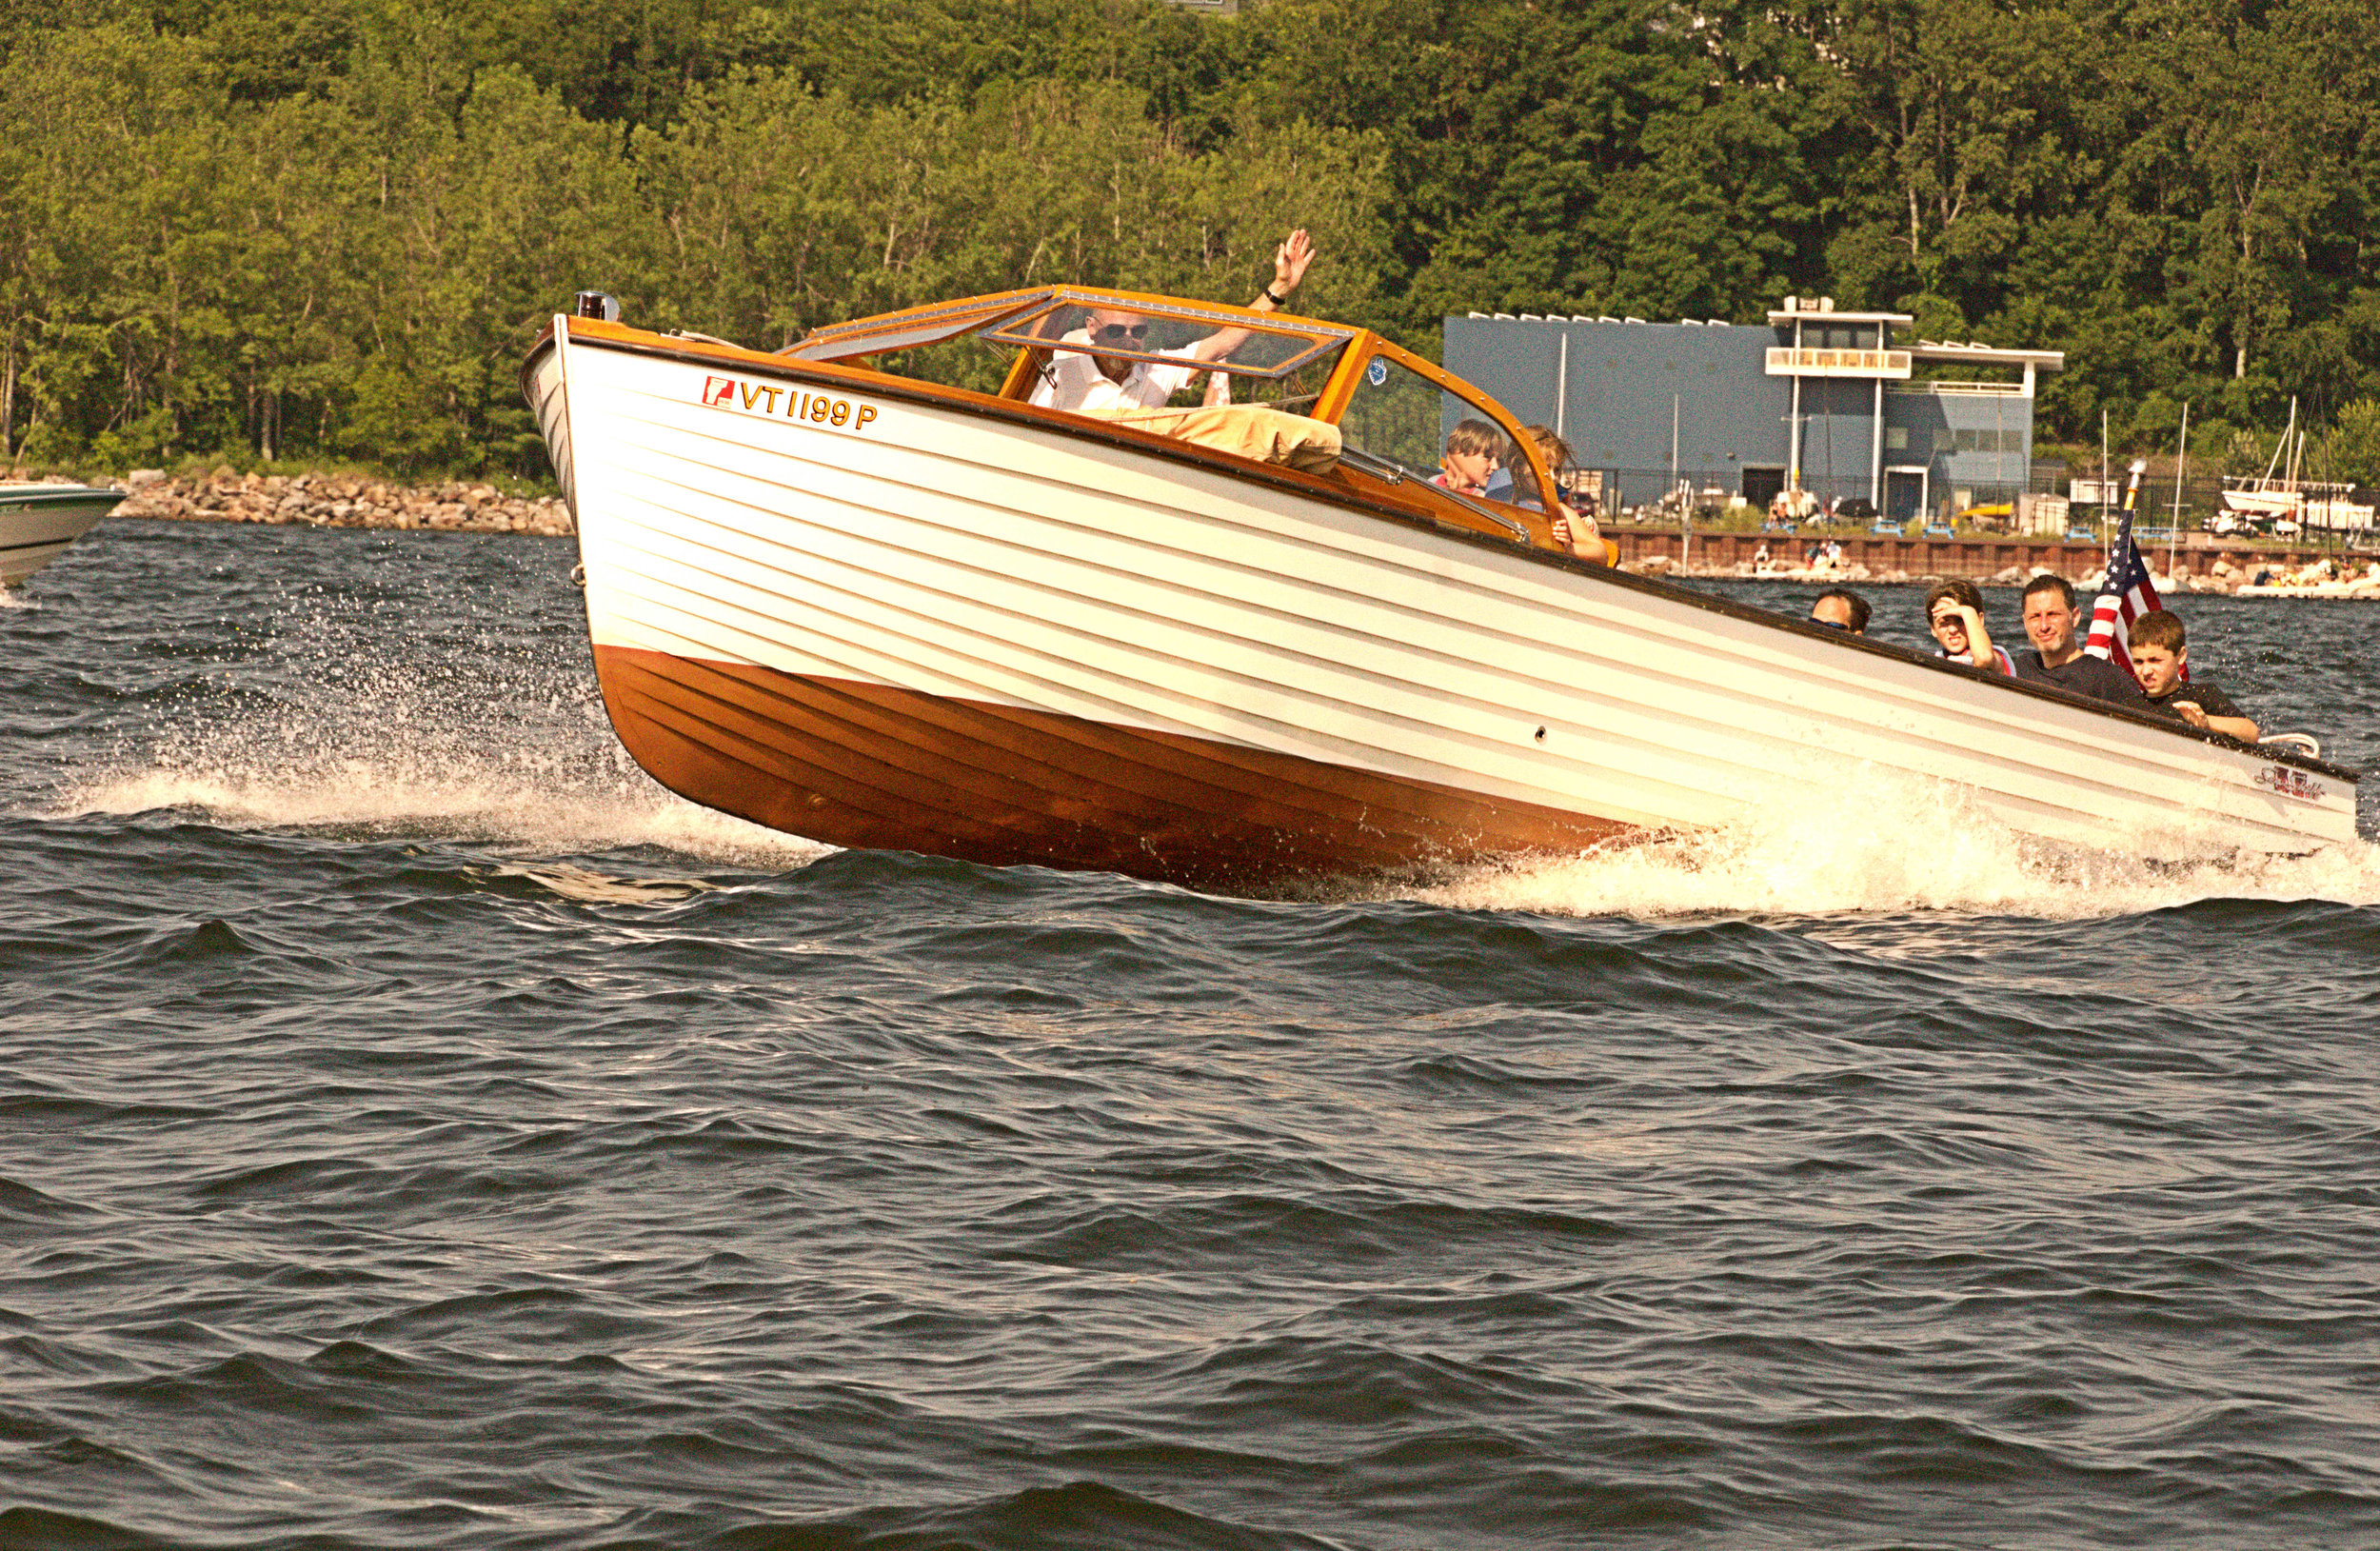 Utility - Lucy, 26' 1956 Chris Craft Sea Skiff, Classic Lapstrake Utility, owned by Ashley Sullivan